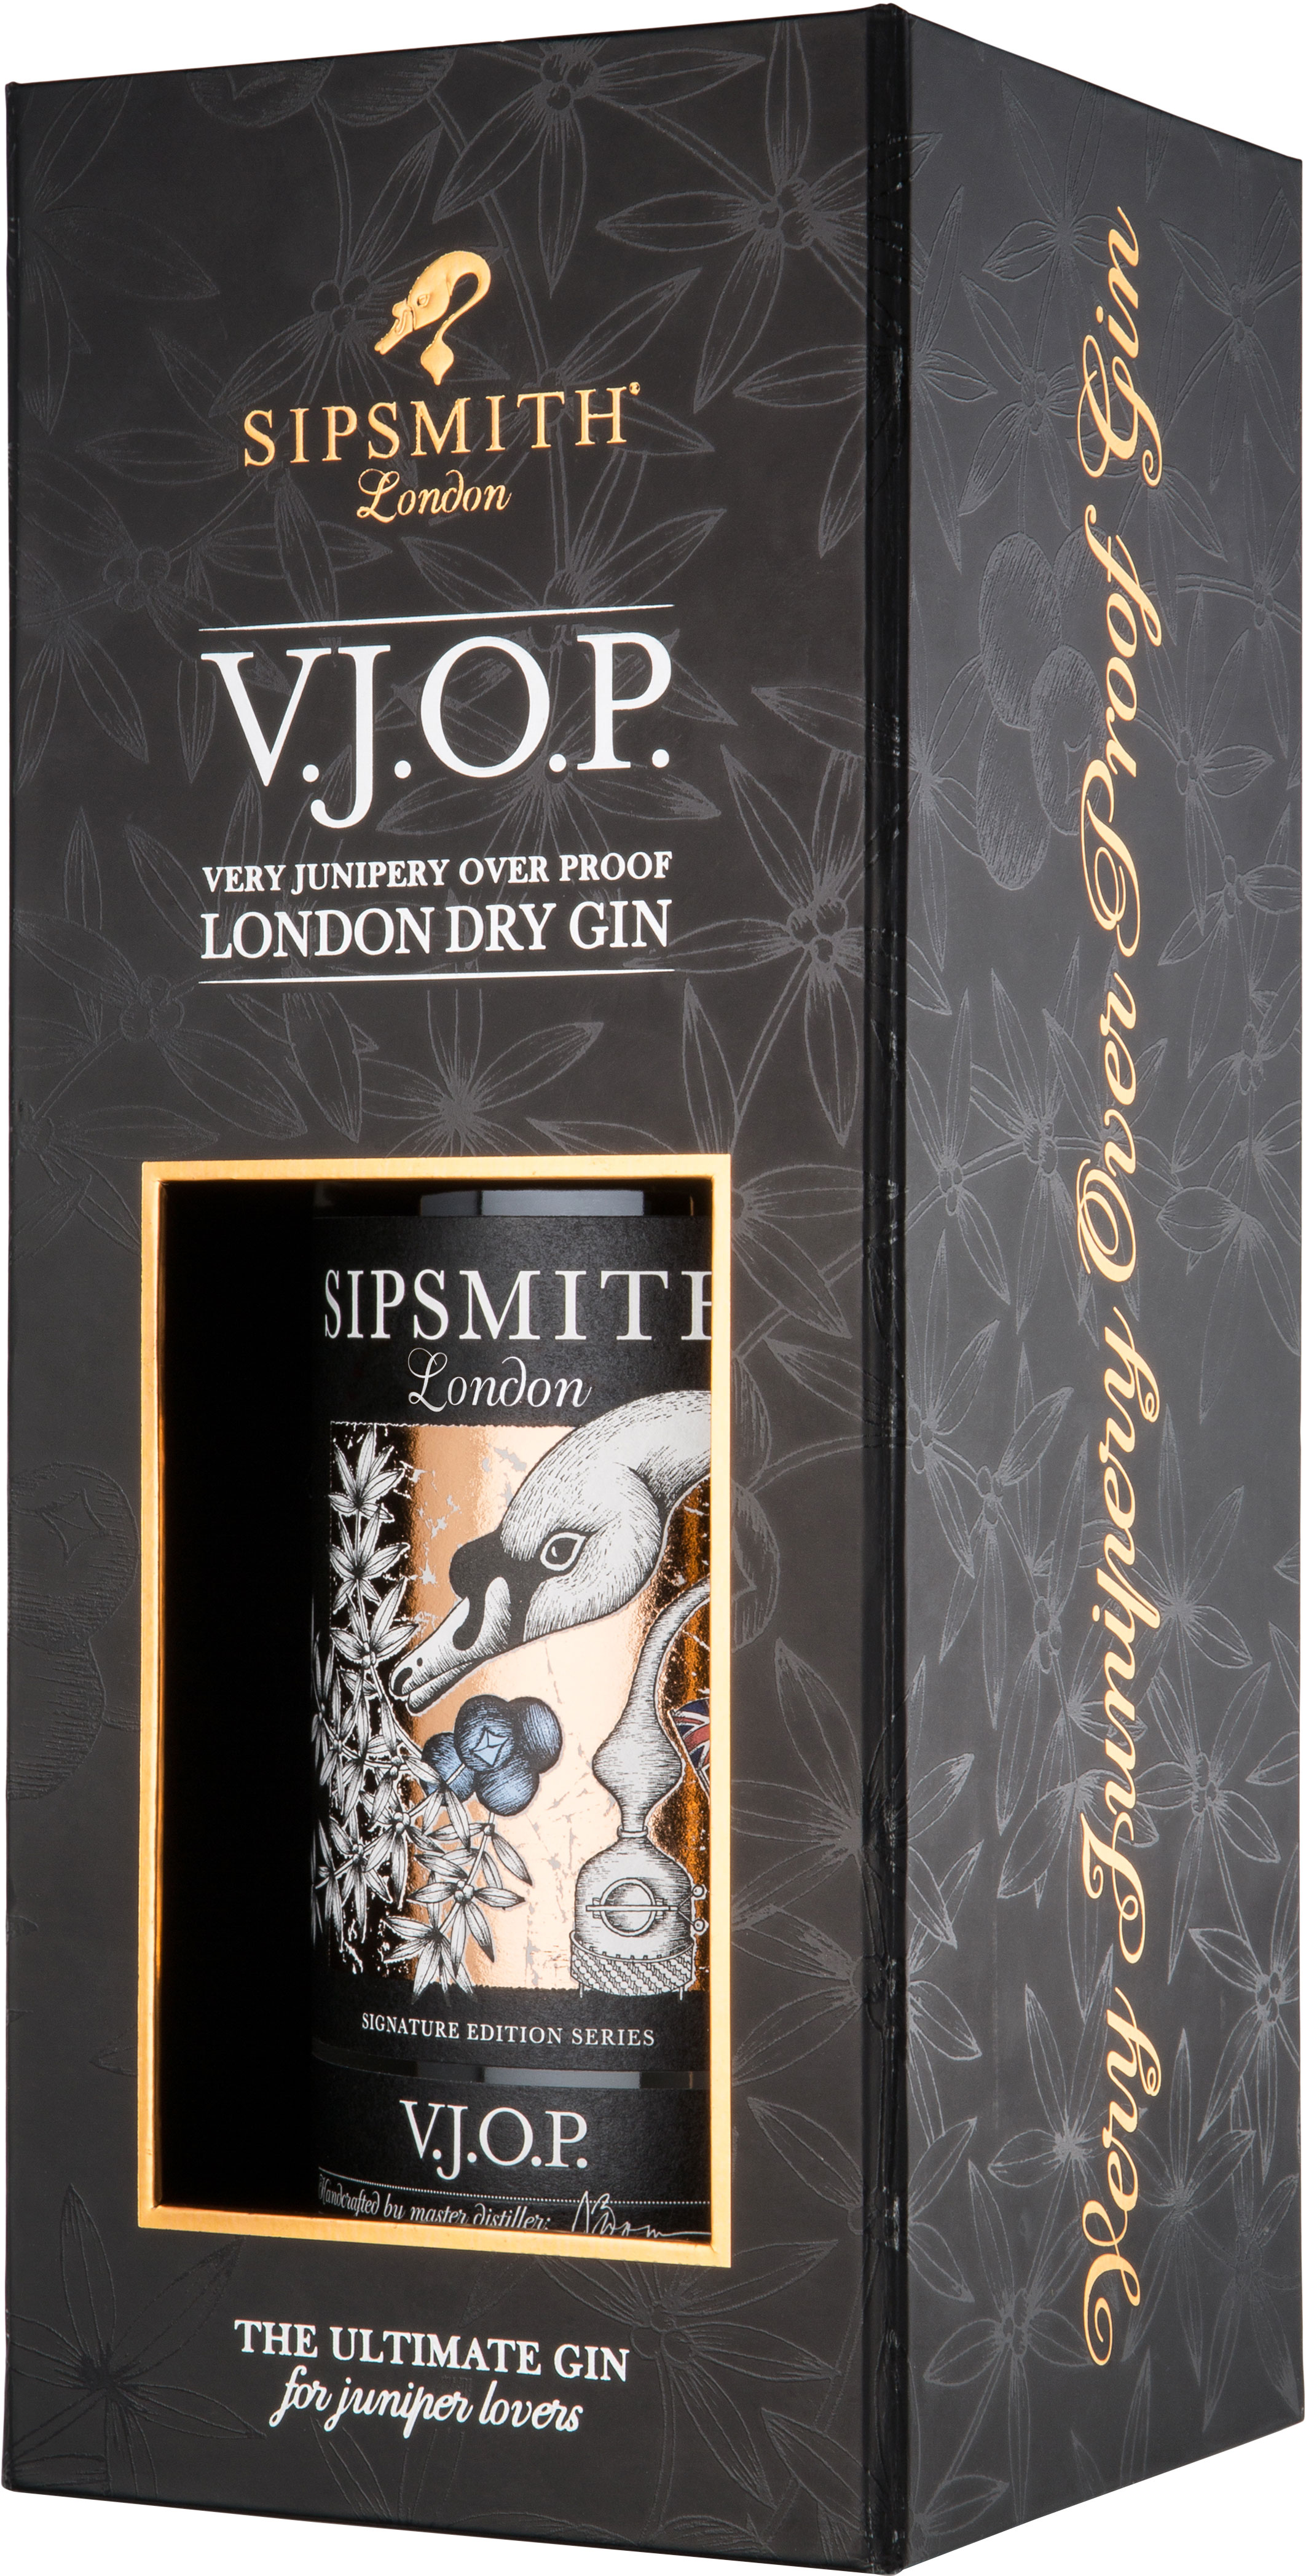 Sipsmith - VJOP Very Junipery Over Proof Gin 70cl Bottle